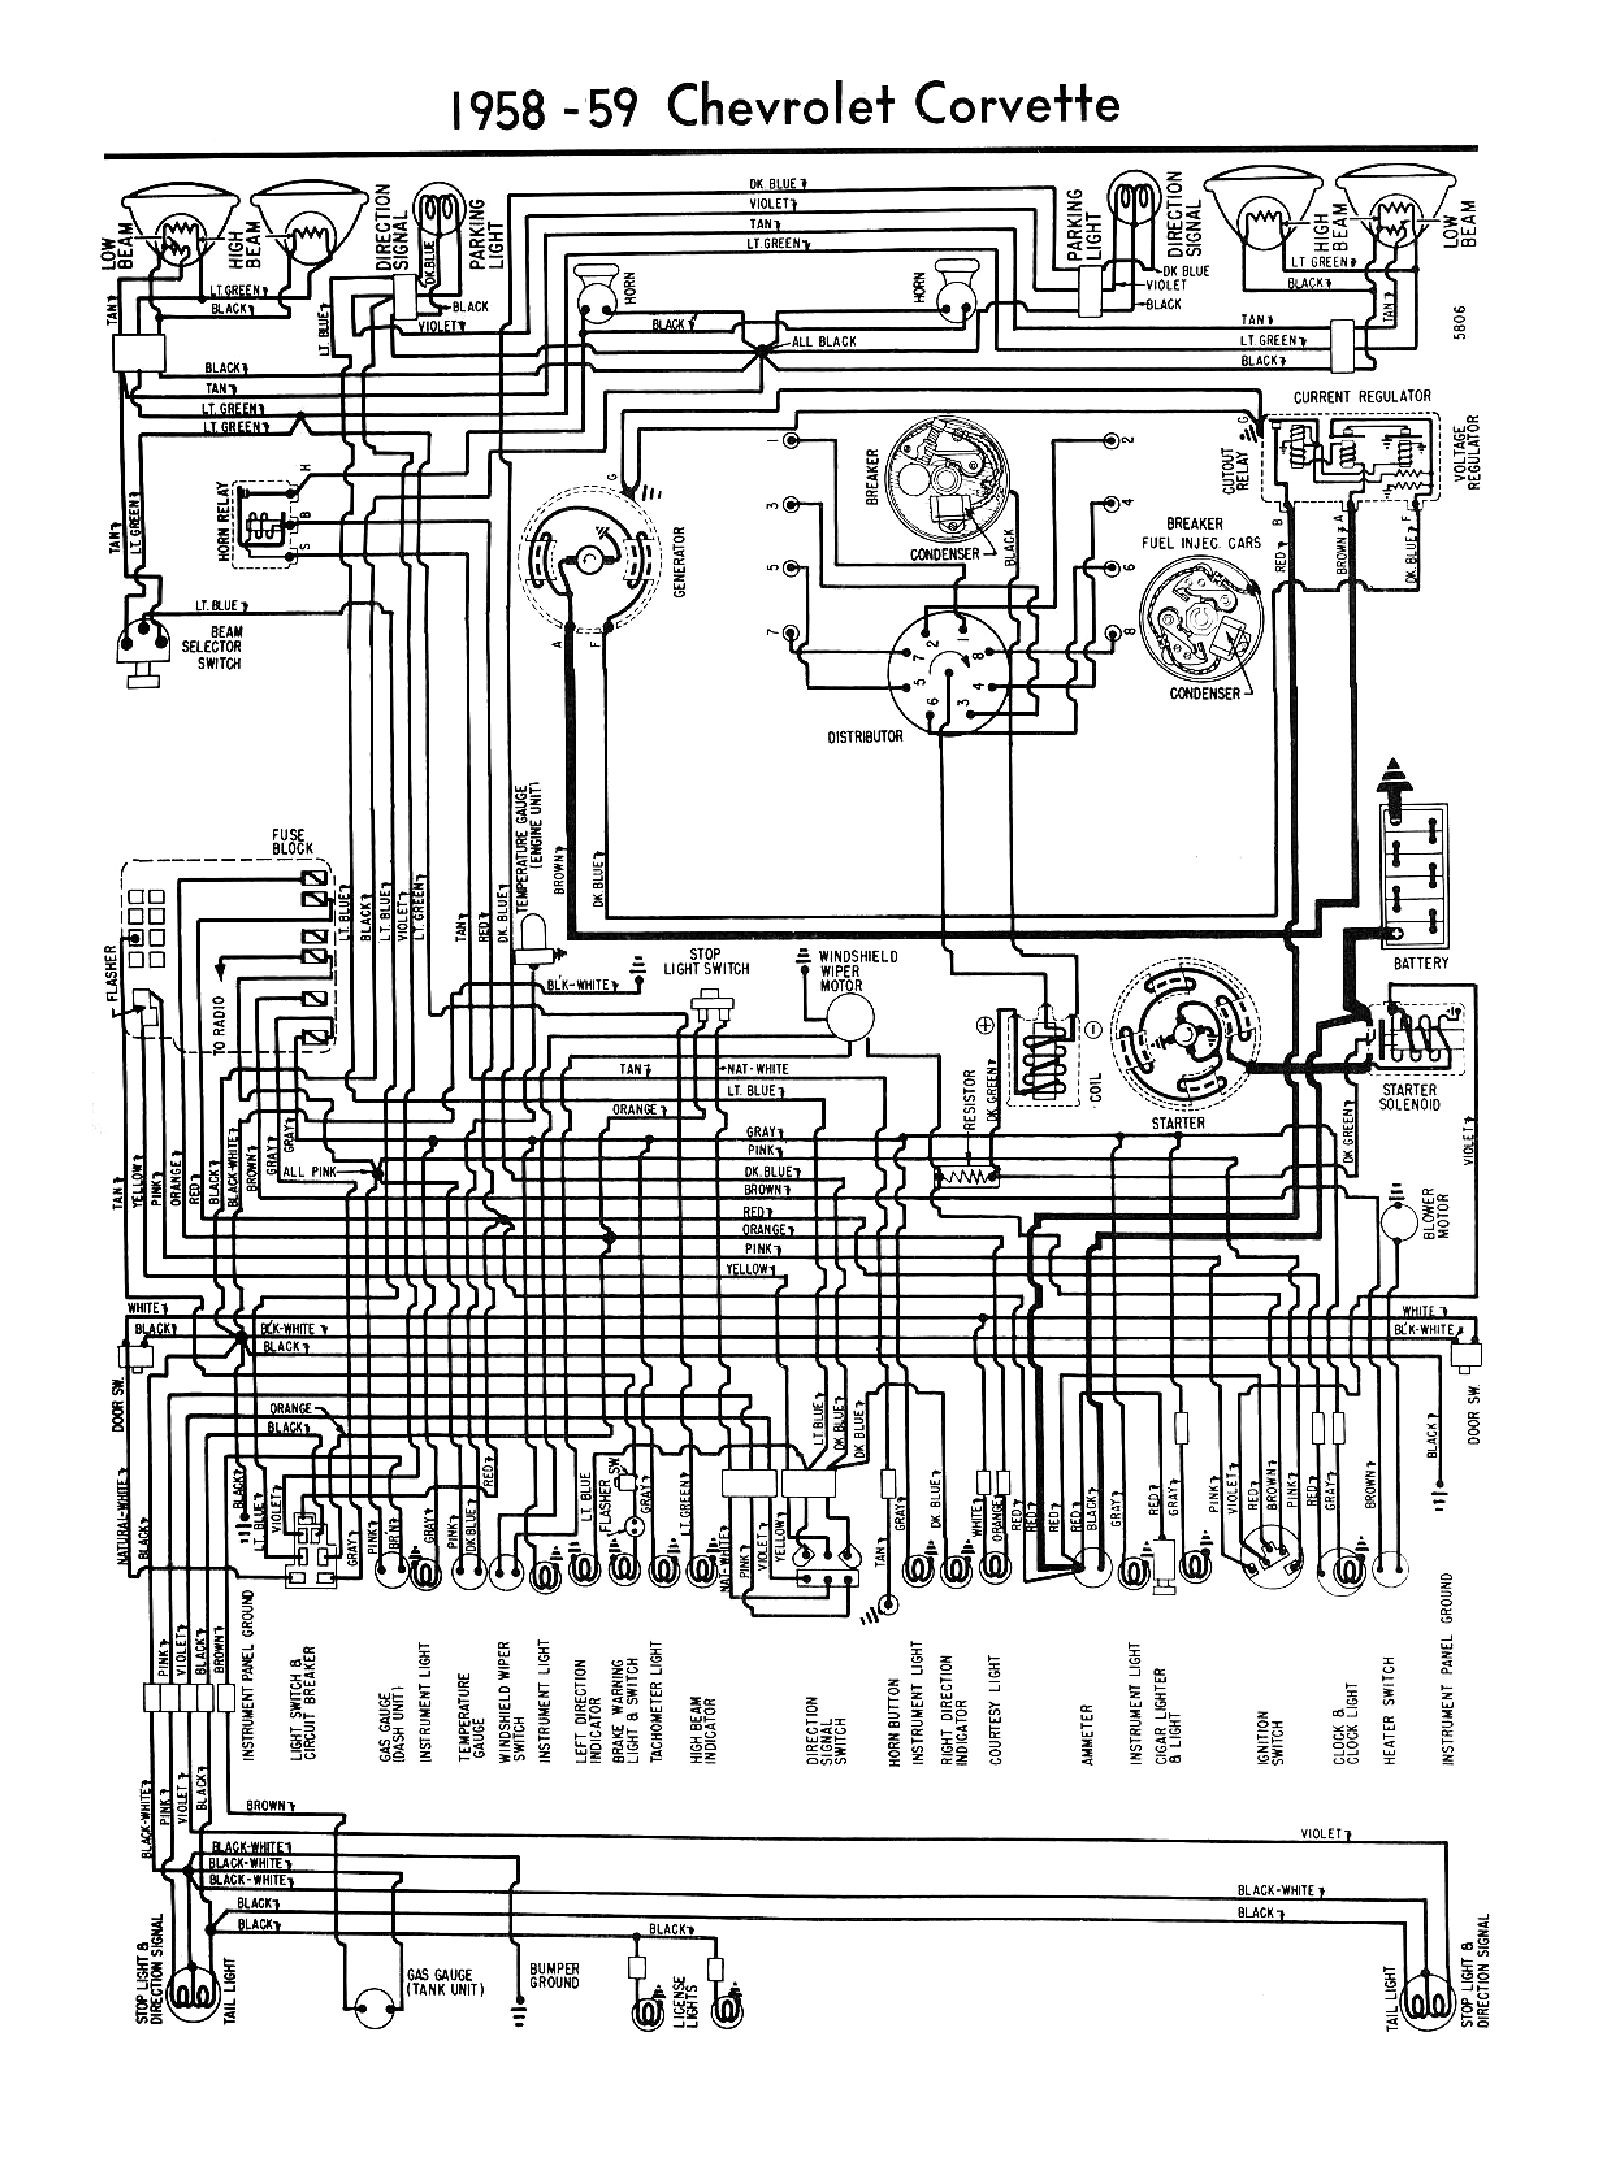 Chevy Truck Body Parts Diagram Chevy Wiring Diagrams Of Chevy Truck Body Parts Diagram